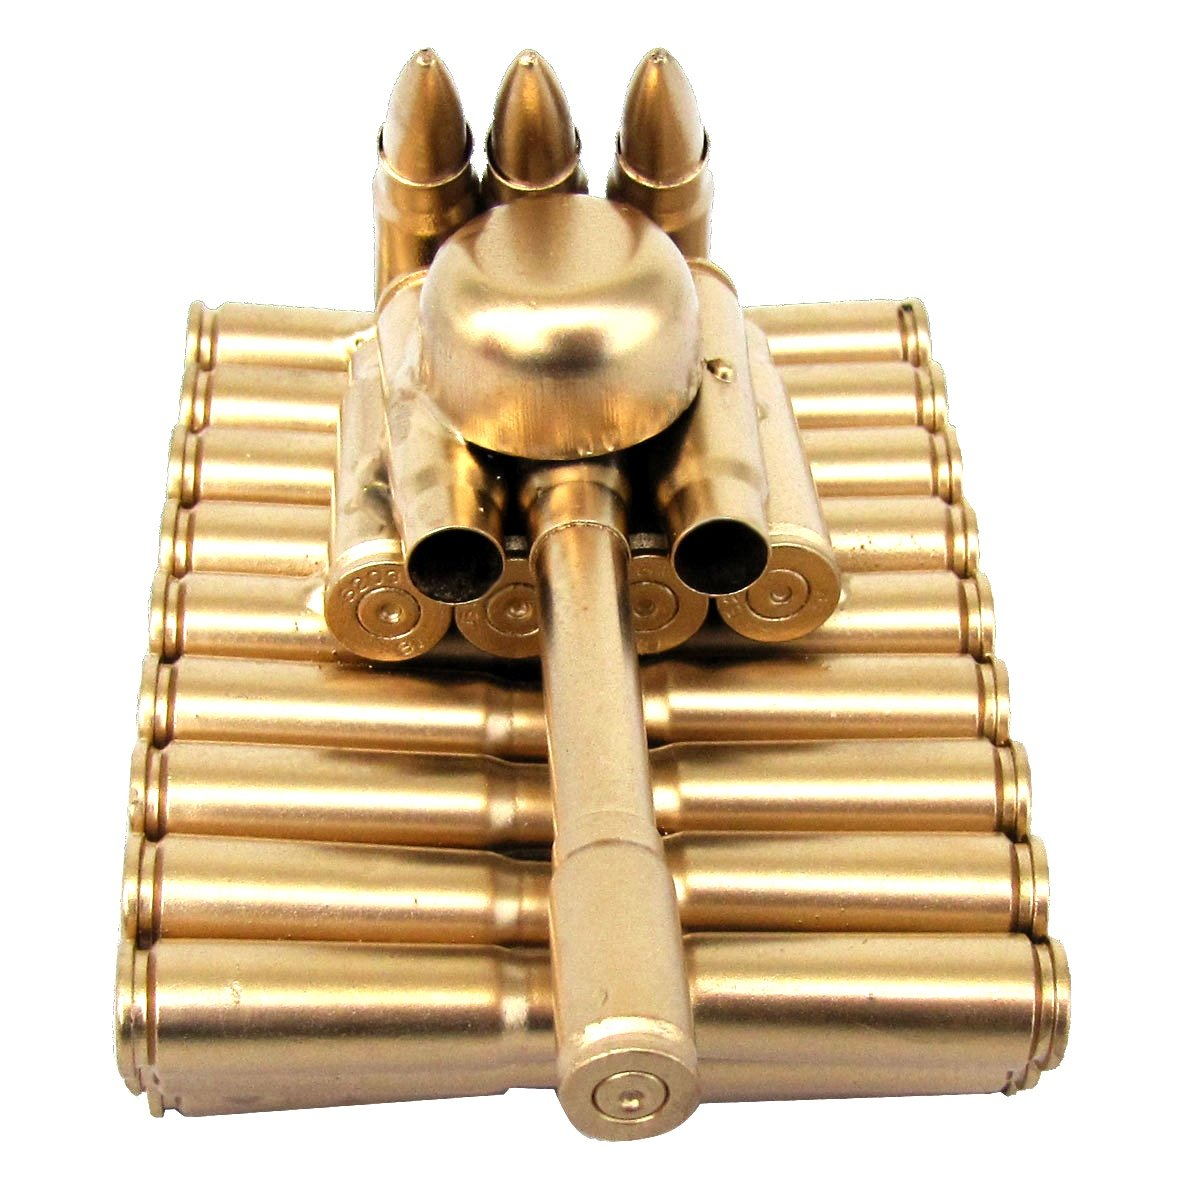 Bullet Shell Casing Shaped Army Tank by TG,LLC